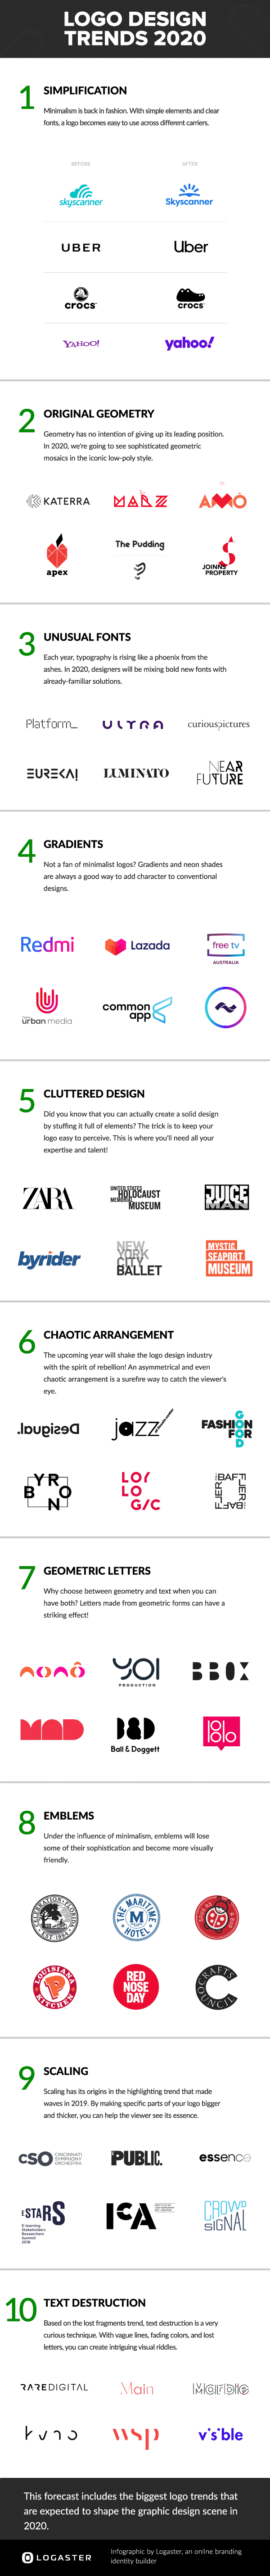 Logo Design Trends 2020 Infographic